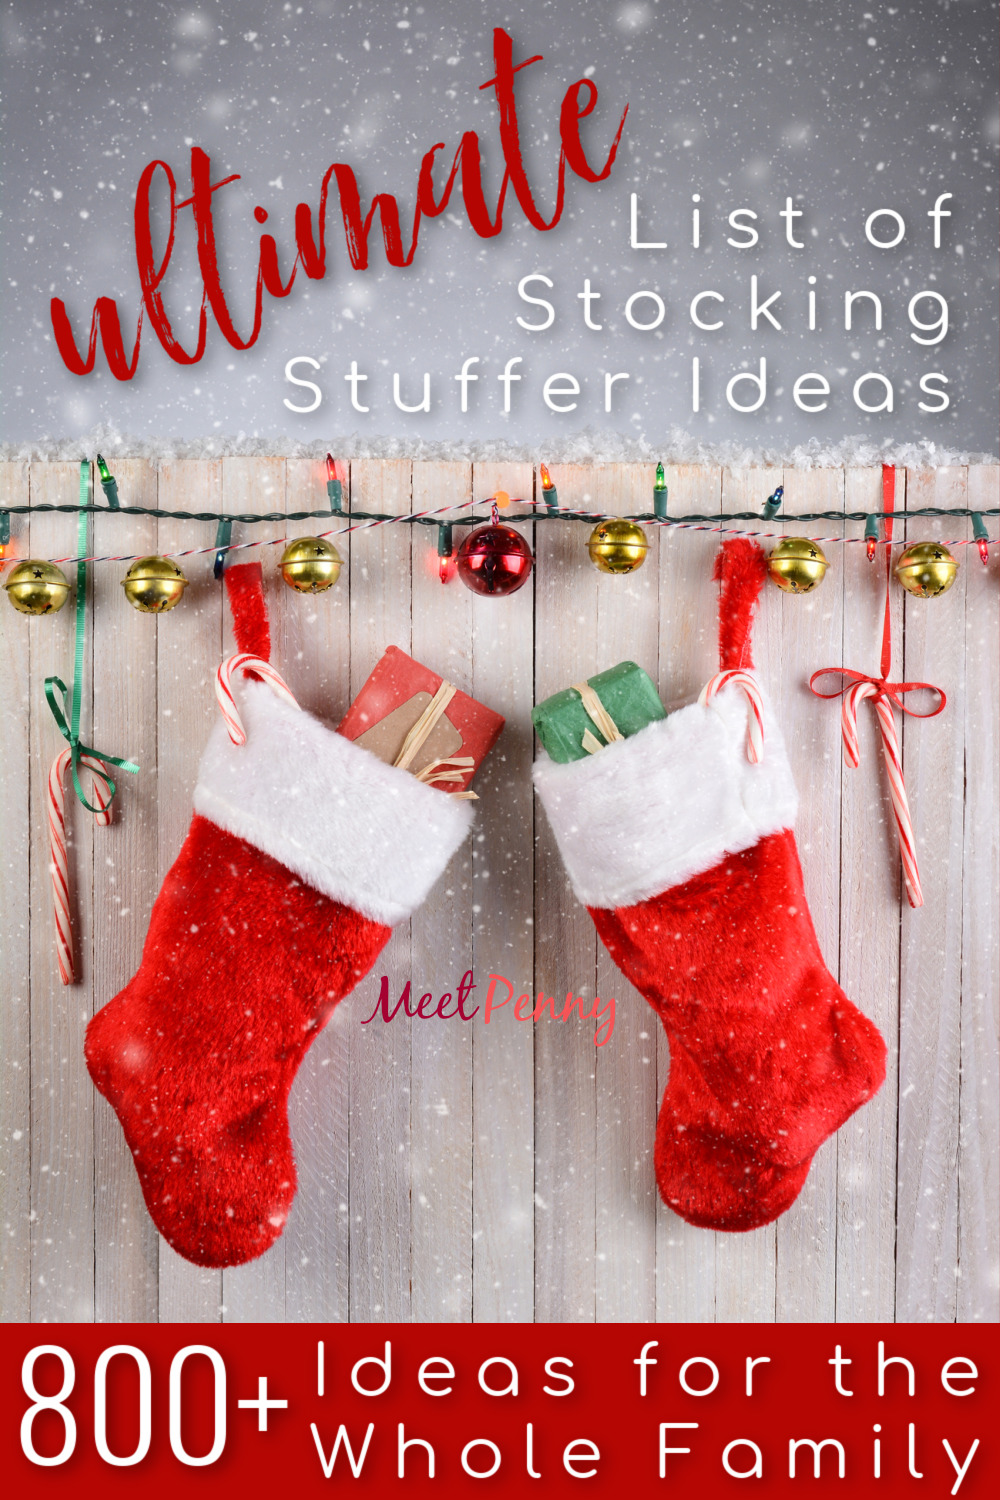 Inexpensive stocking stuffer ideas for everyone on your list - Over 800 ideas for children ages 0 through Adults. Great for gift basket ideas too.